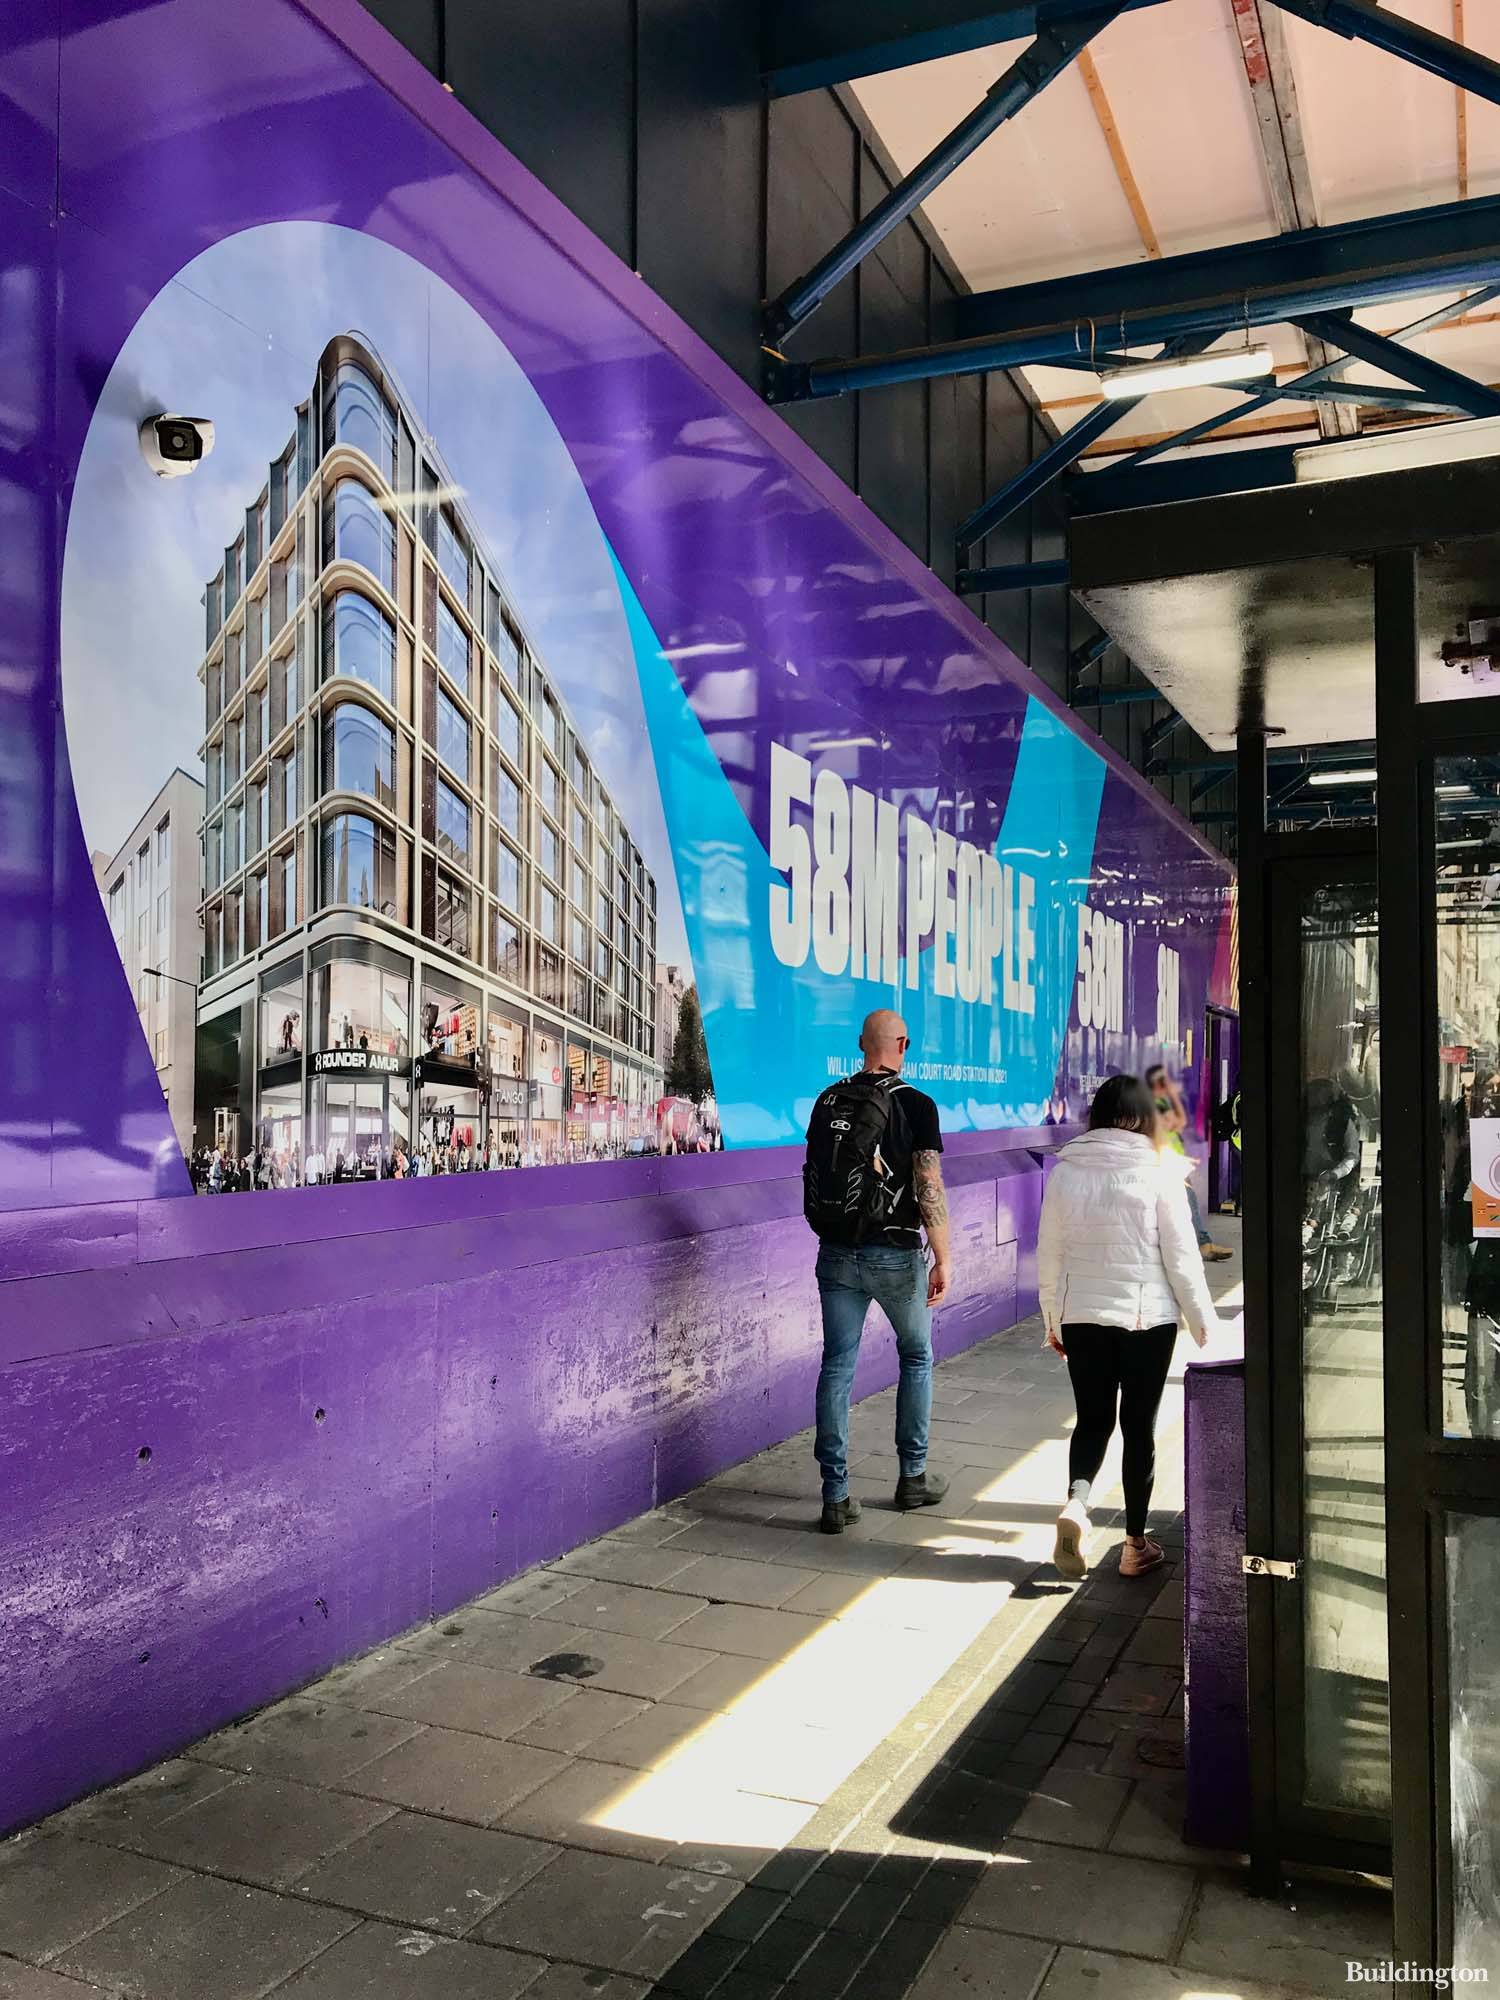 58 million people were expected to use the Tottenham Court Road Crossrail Station in 2021, which is across the road from 70-88 Oxford Street retail space.